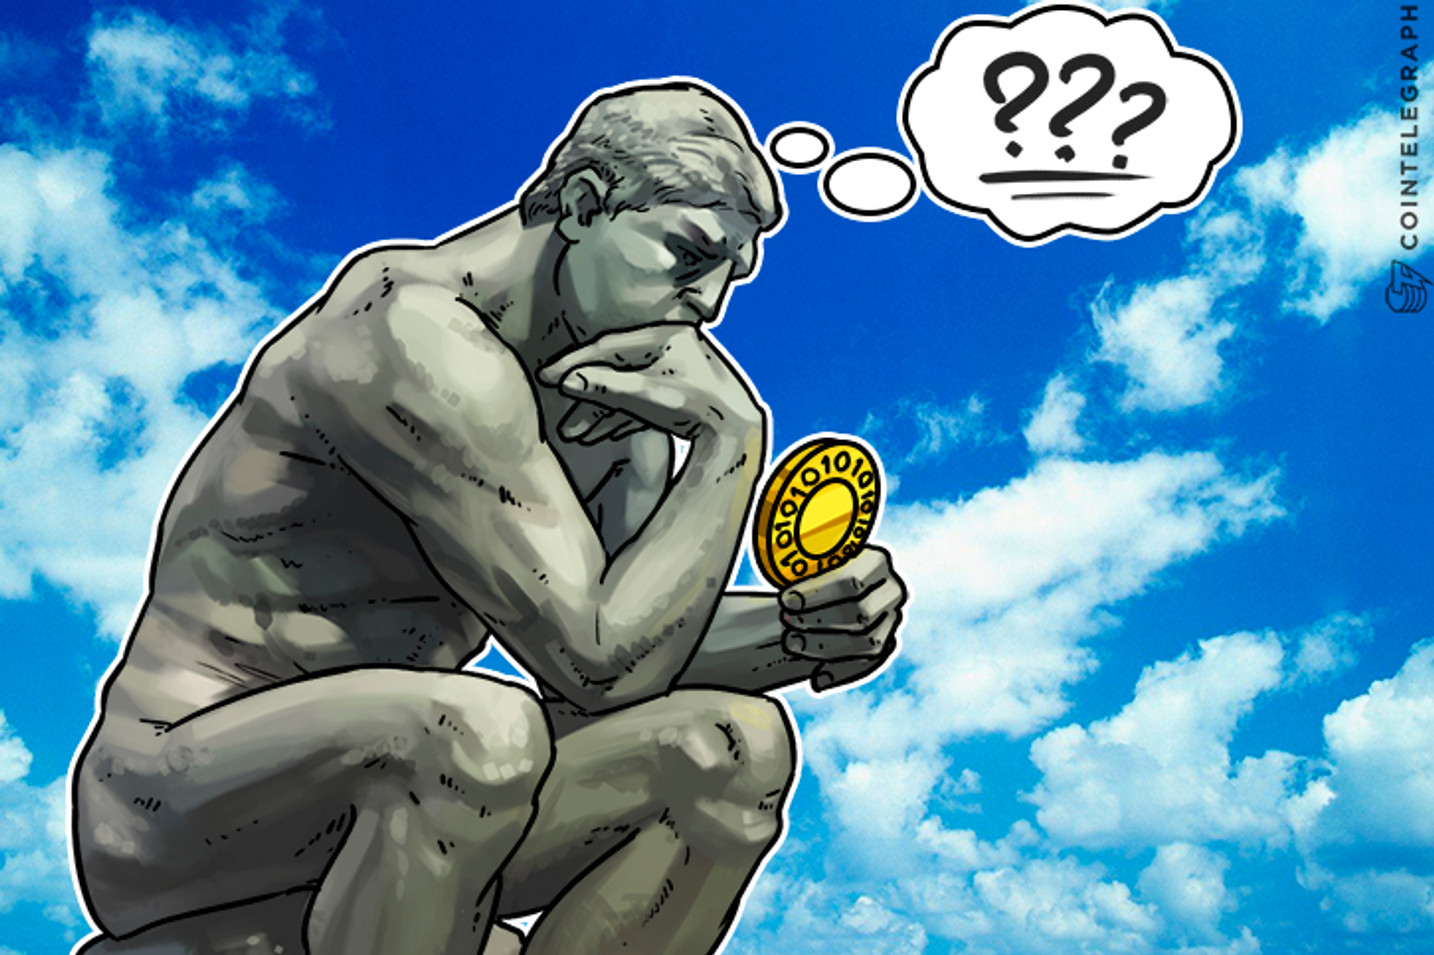 Is Cryptocurrency Real Money? Brief Discussion on Major Issues Surrounding Debate